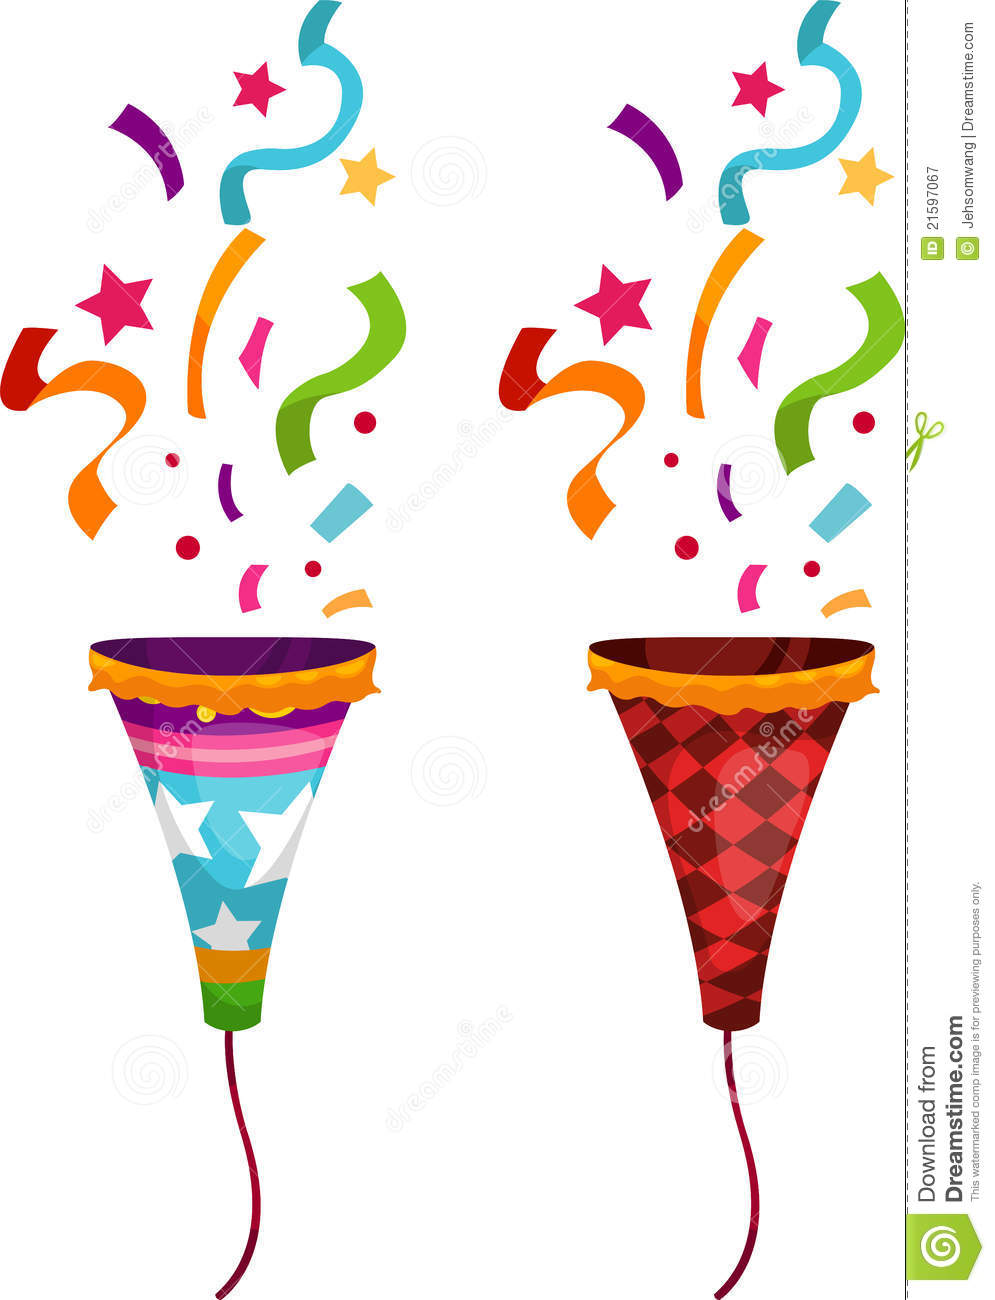 popper-party-vector-21597067